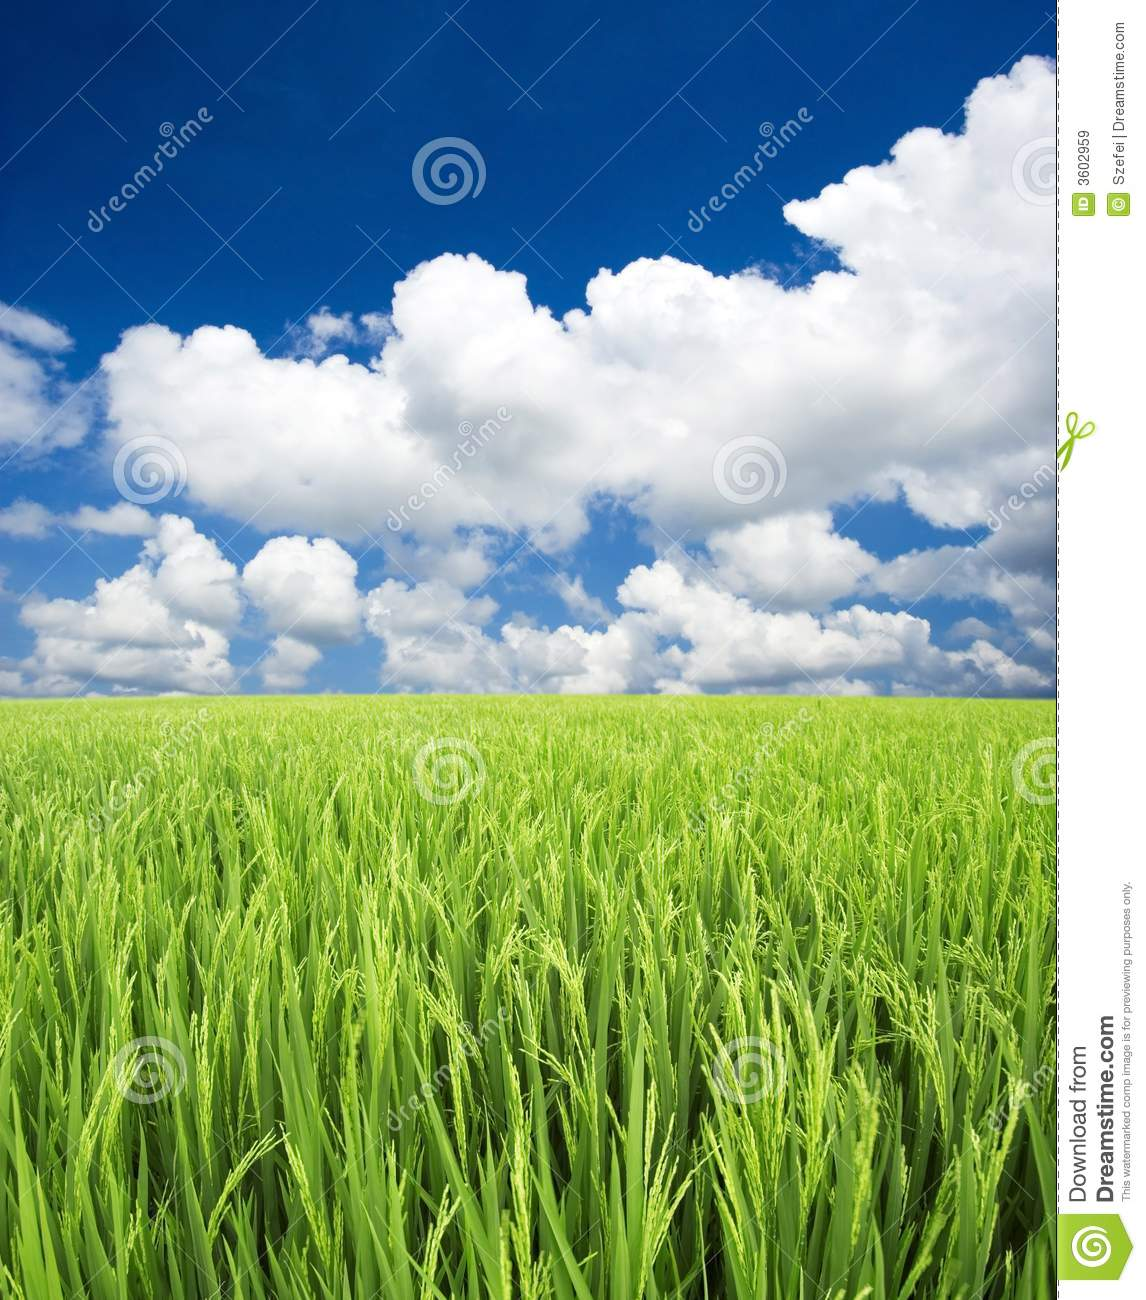 Green field, sky and clouds